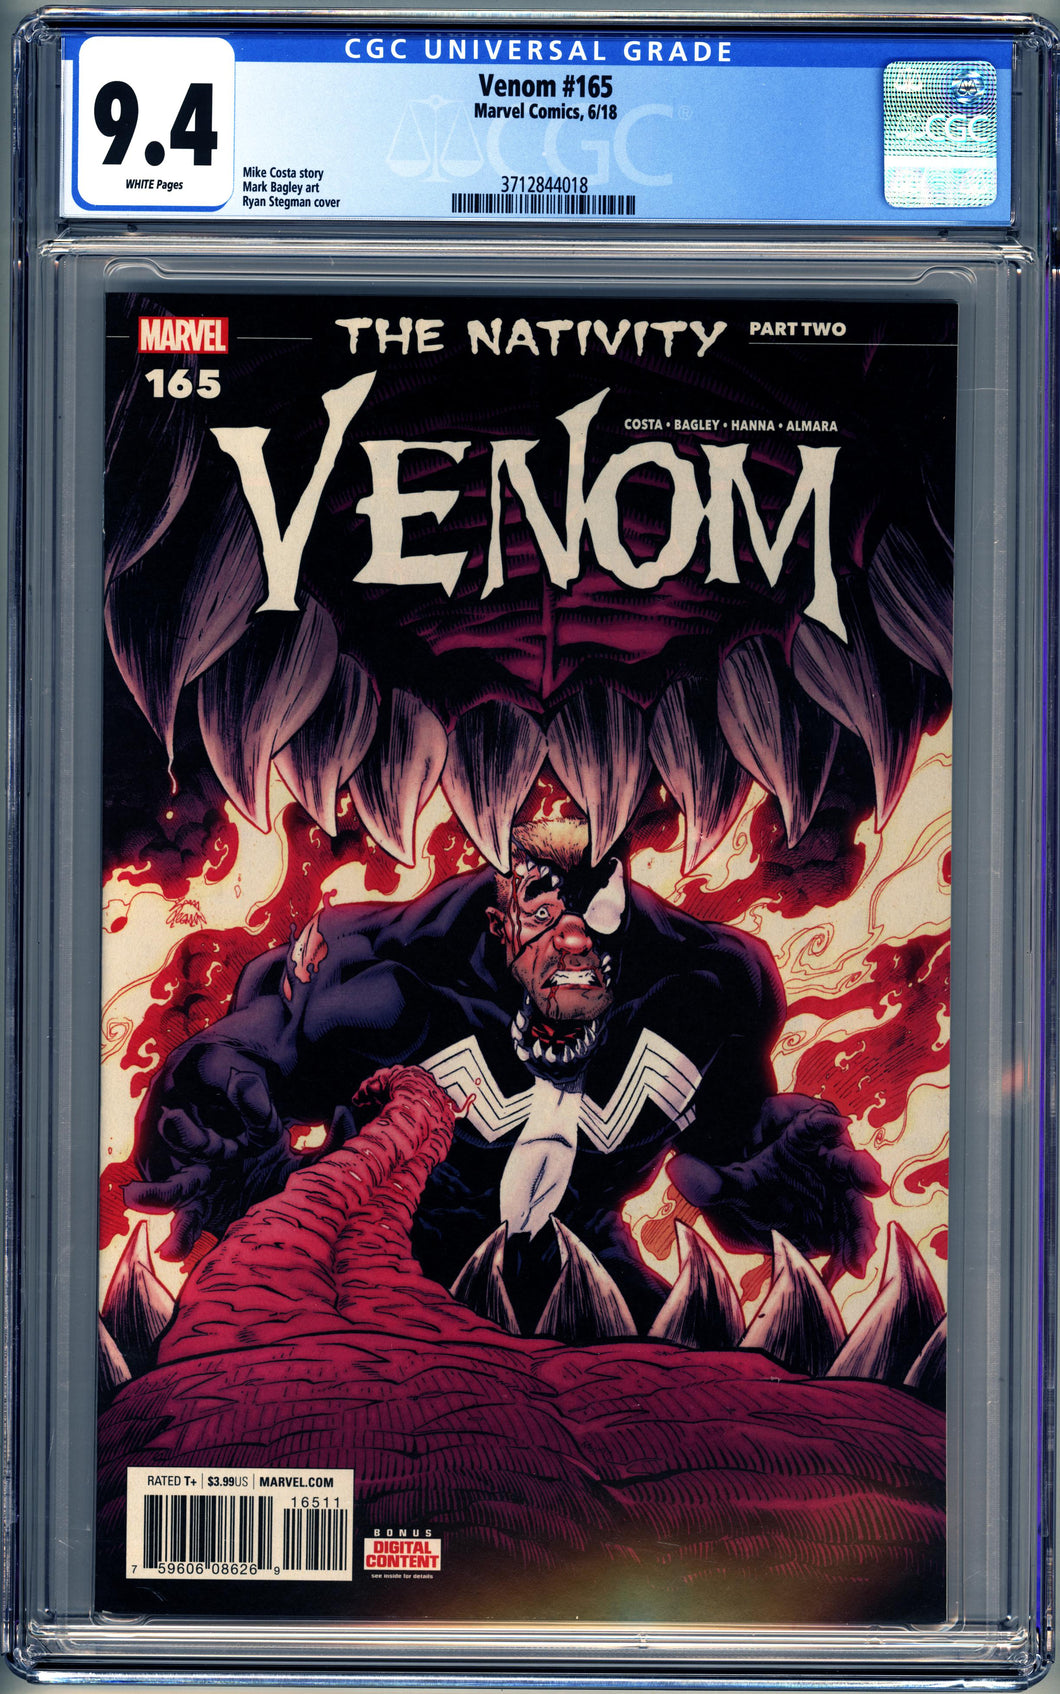 VENOM #165 (2018 Marvel) CGC GRADED 9.4 NM